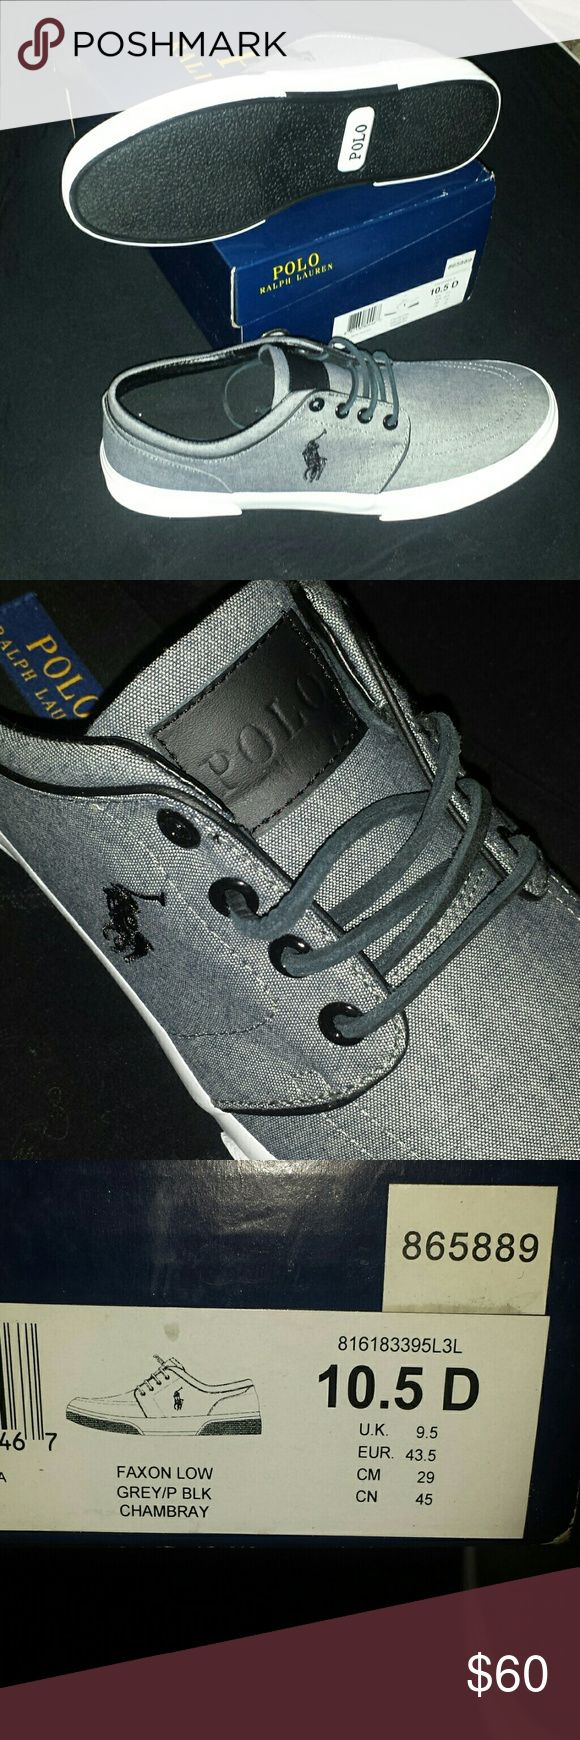 BNIB Polo Ralph Lauren faxon low mens shoes Bought for my ex's brother.... ended up not being with my ex when his brothers birthday came around. Still have the receipt... Just asking what I paid :) Polo by Ralph Lauren Shoes